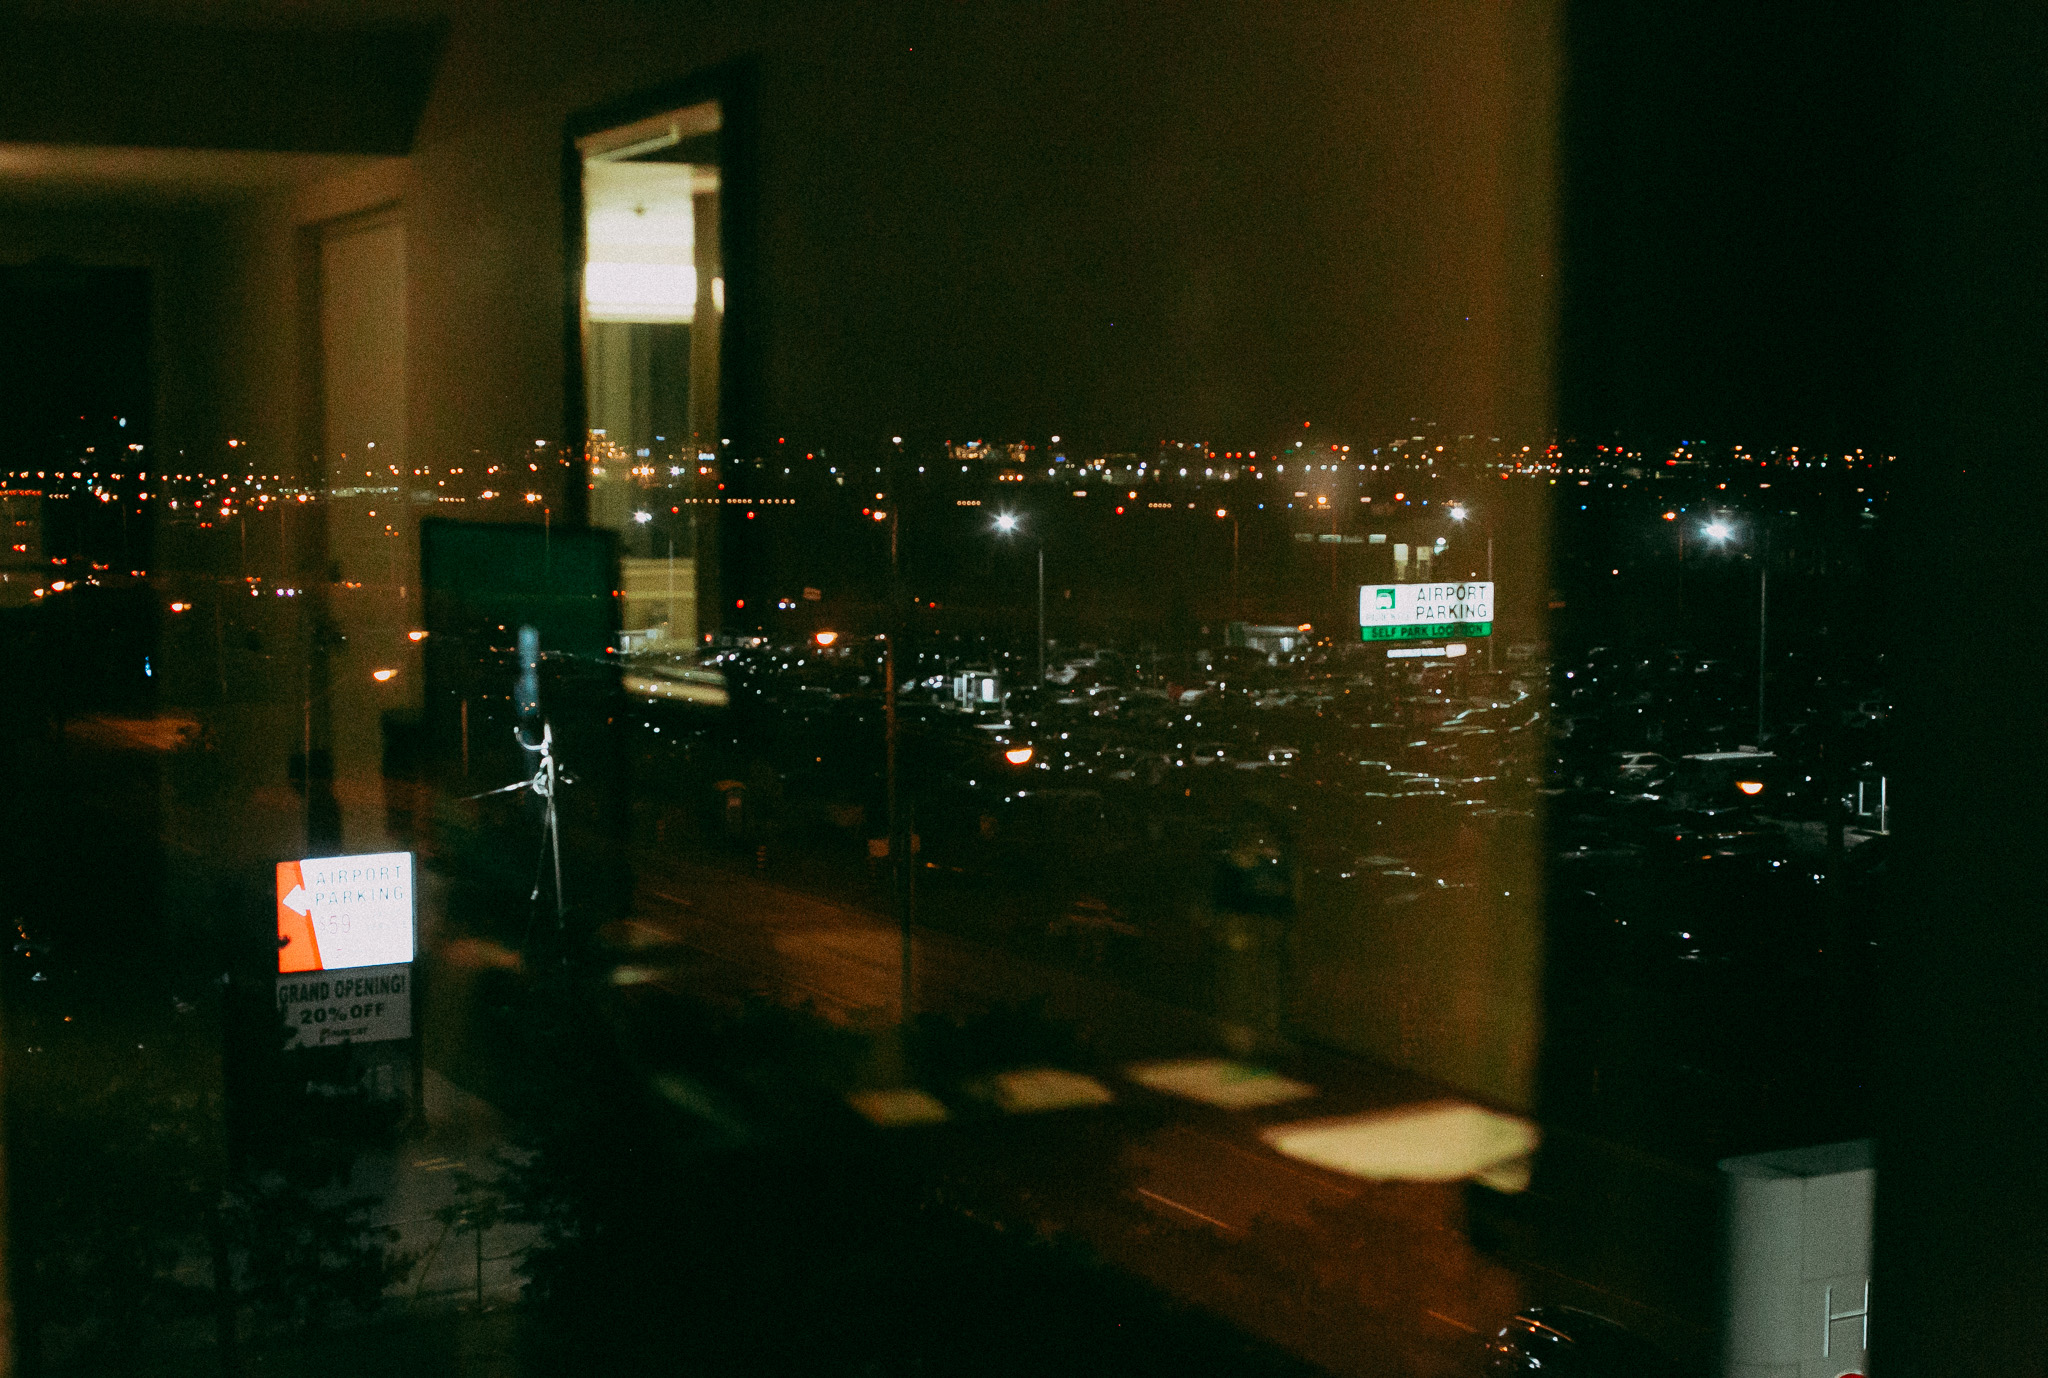 Somewhere in the Toronto airport district - Reflections looking out a hotel room window the night before our flight. Tomorrow morning it's straight to the Island of Aruba.